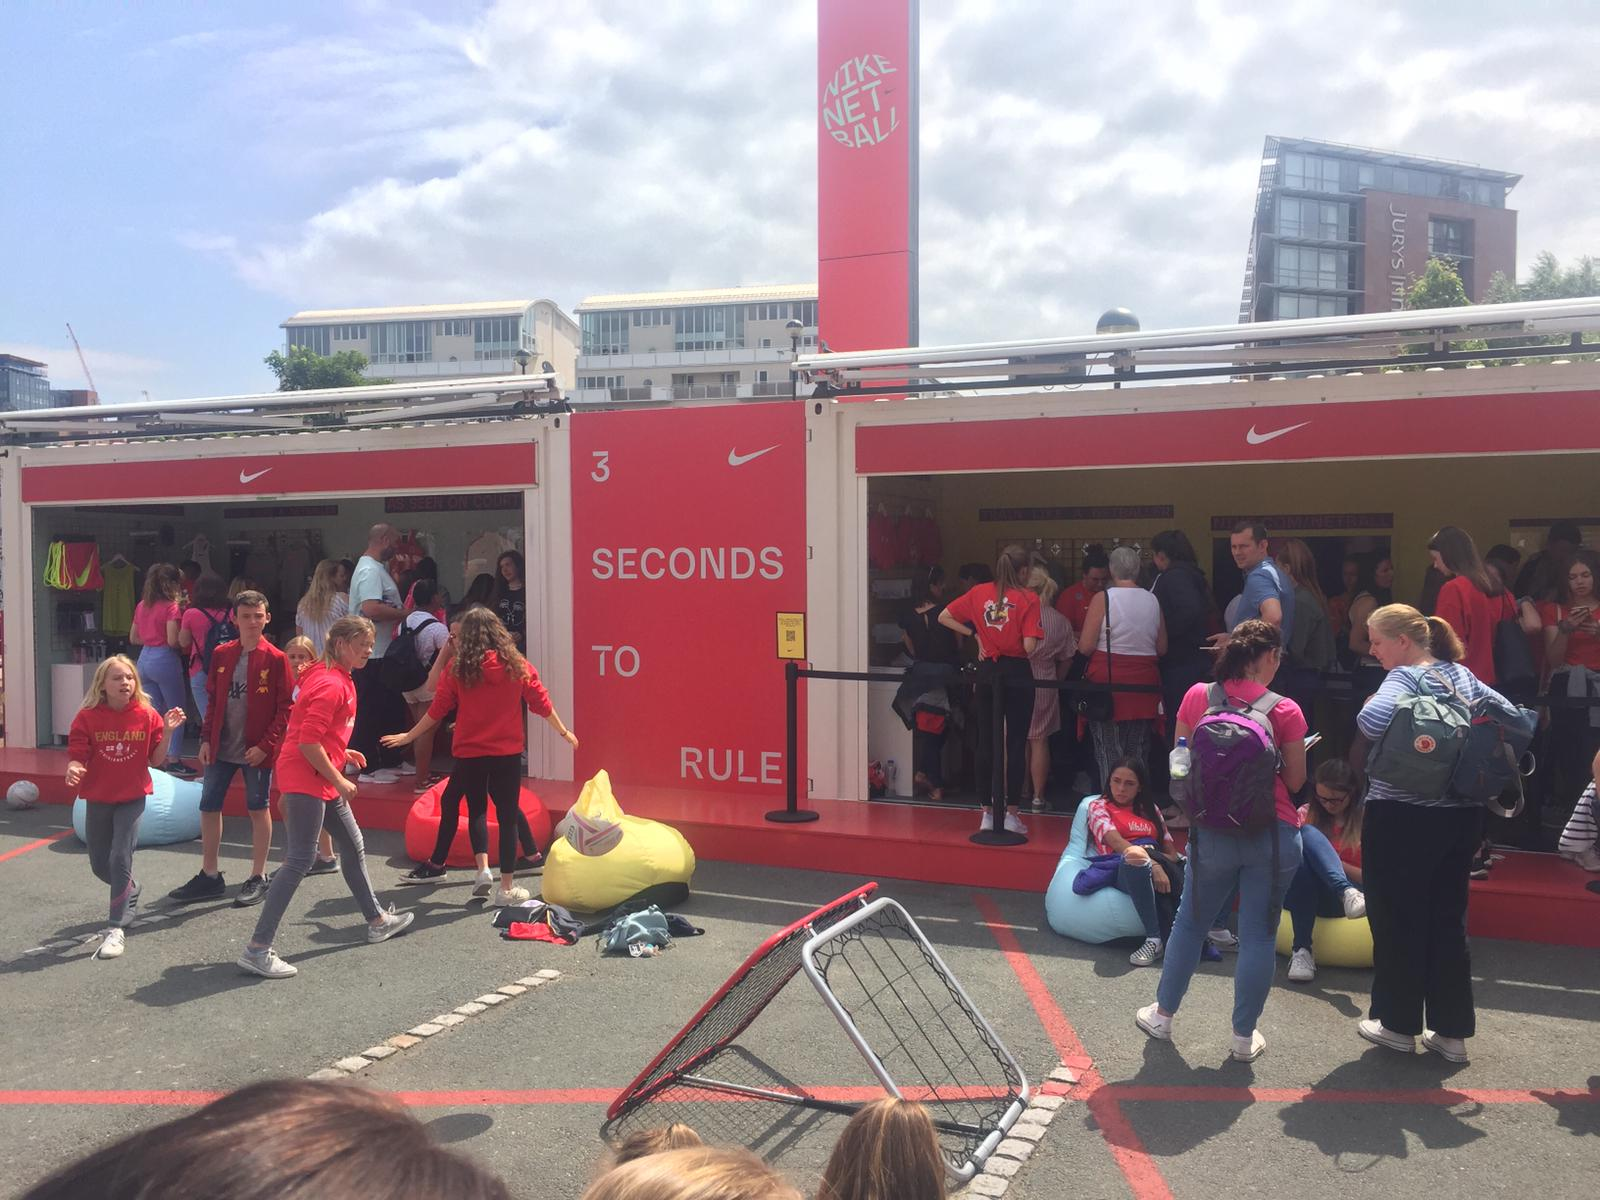 Nike brand activation in Liverpool for Vitality Netball World Cup 2019